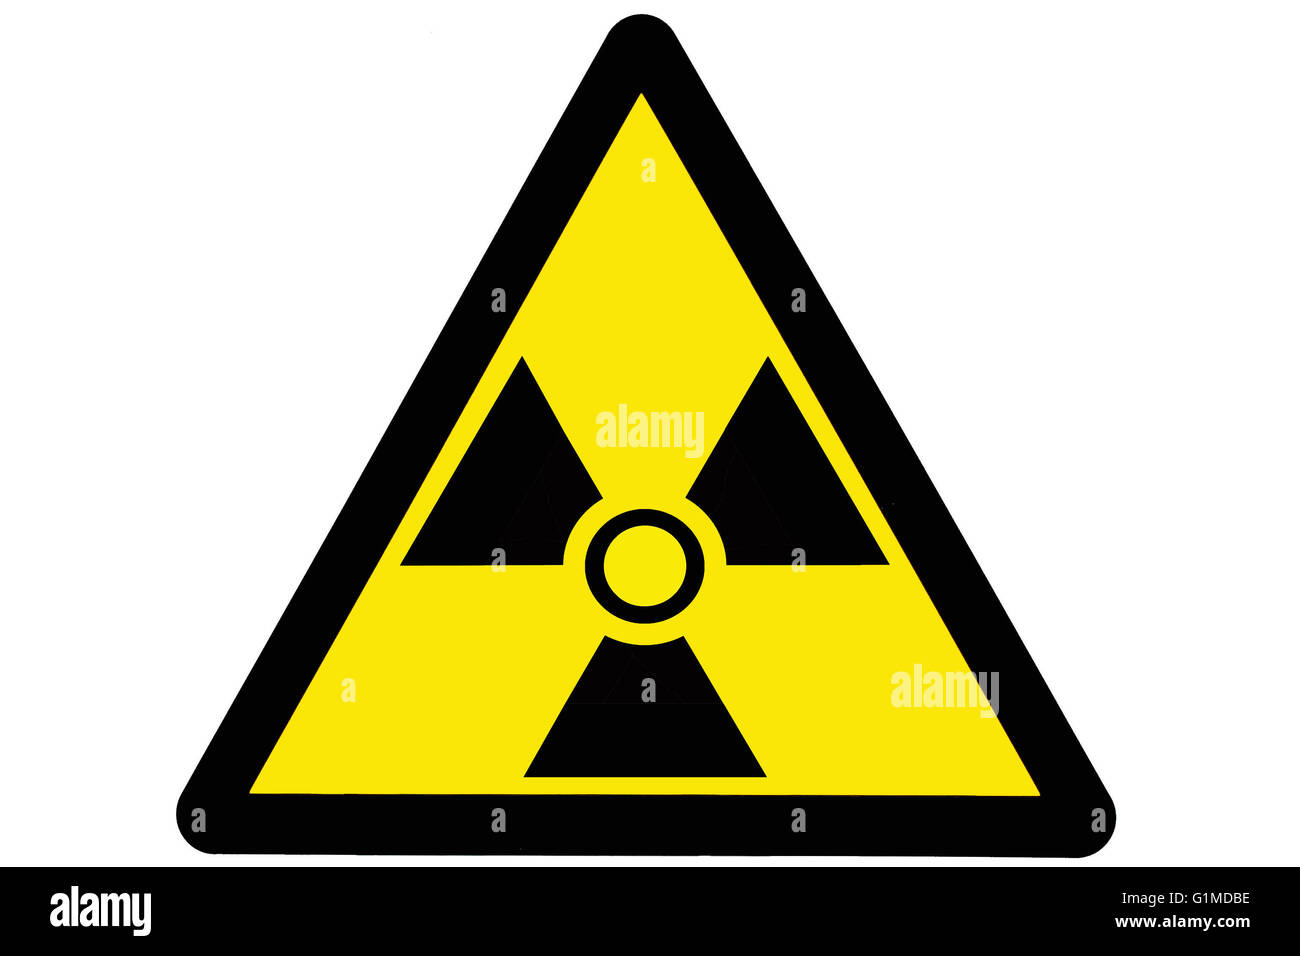 Triangular shaped radiation warning sign Stock Photo